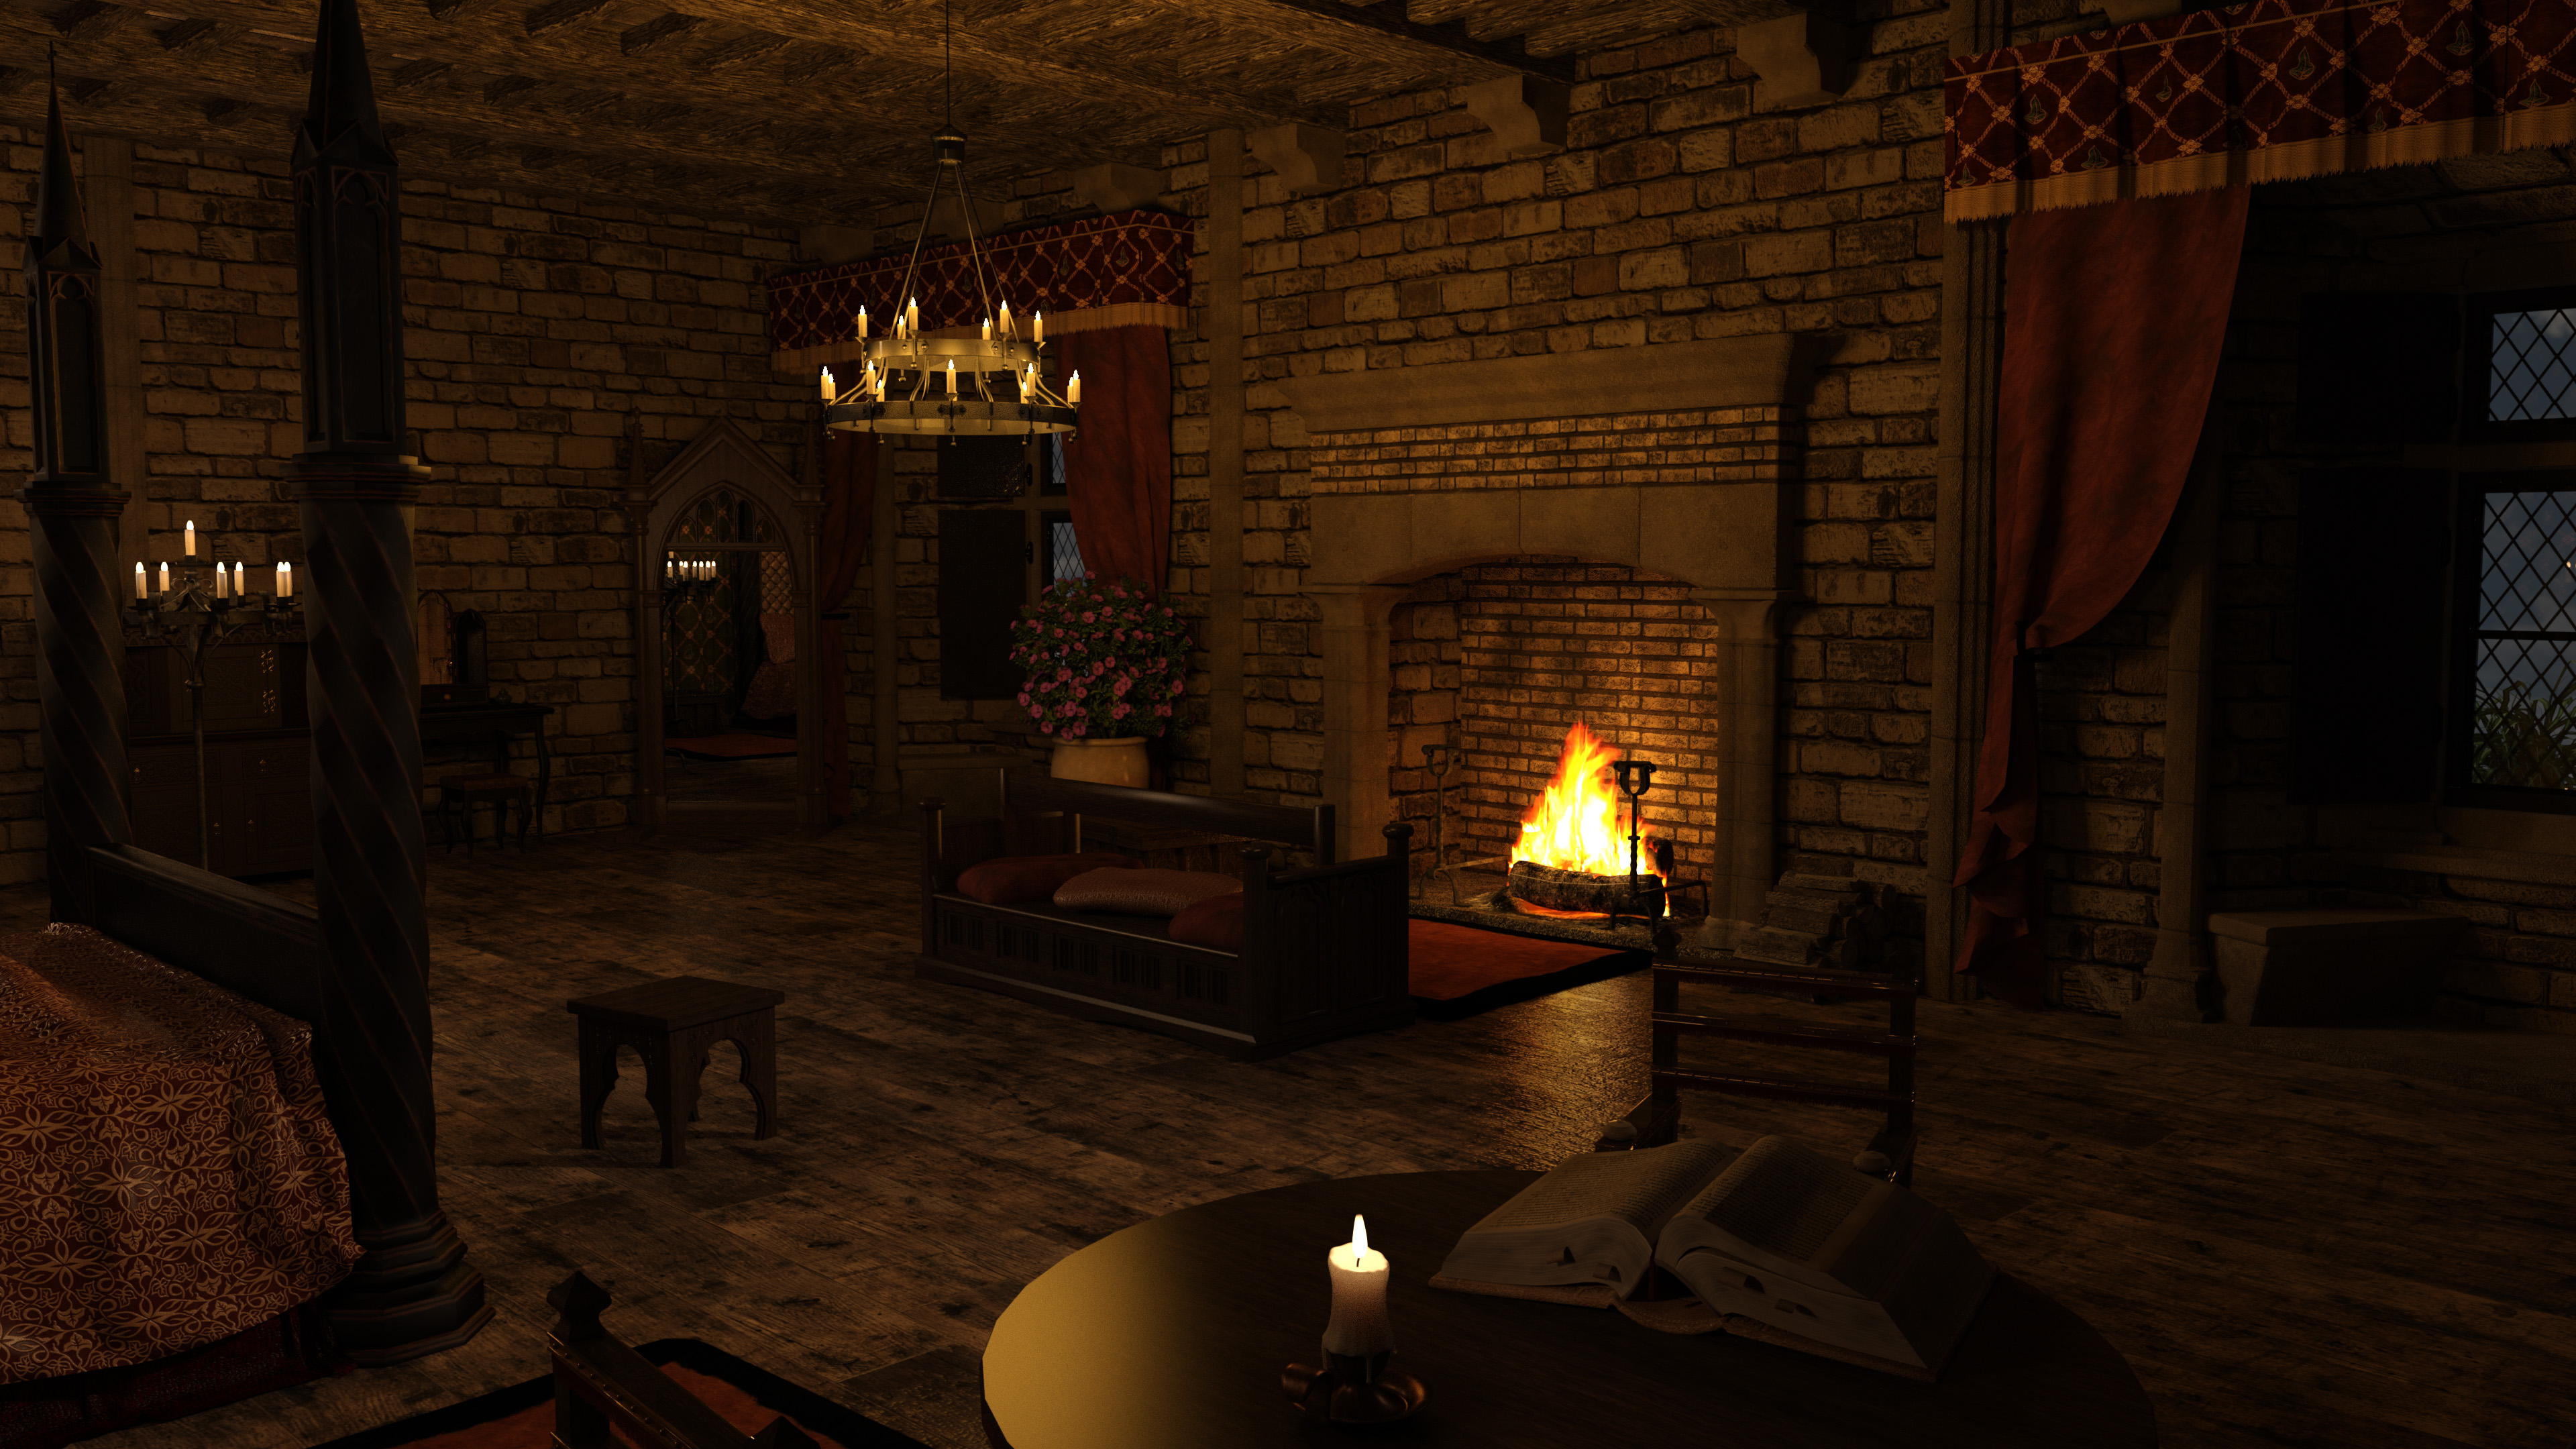 MICK Medieval Bedroom New Set Tweaks Angle 2 01 by Gator3D on